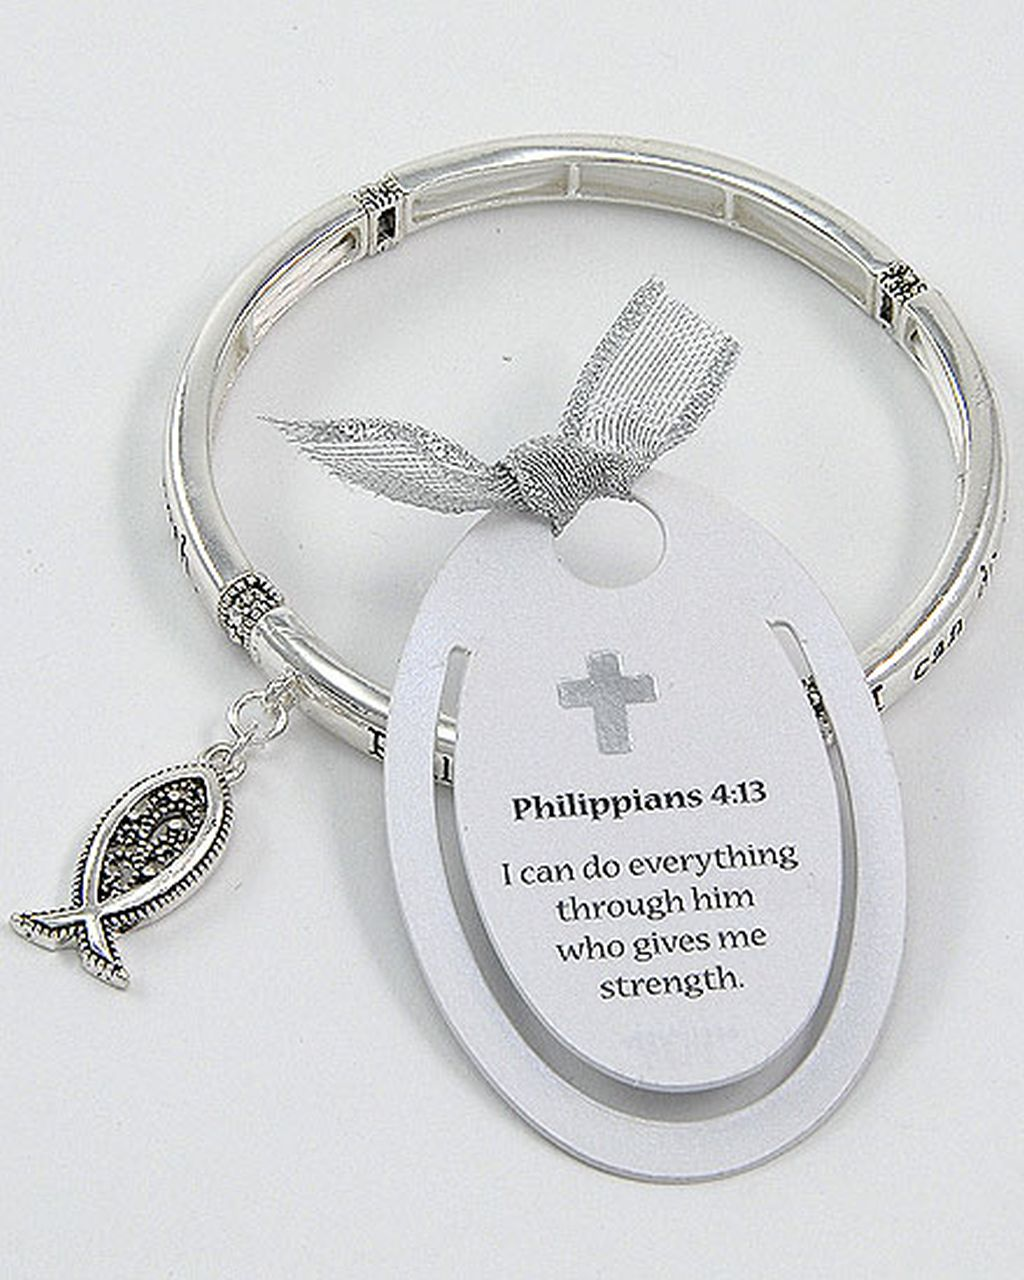 Philippians 4:13 Fish Charm Bracelet, Inspirational Message Silver Bangle